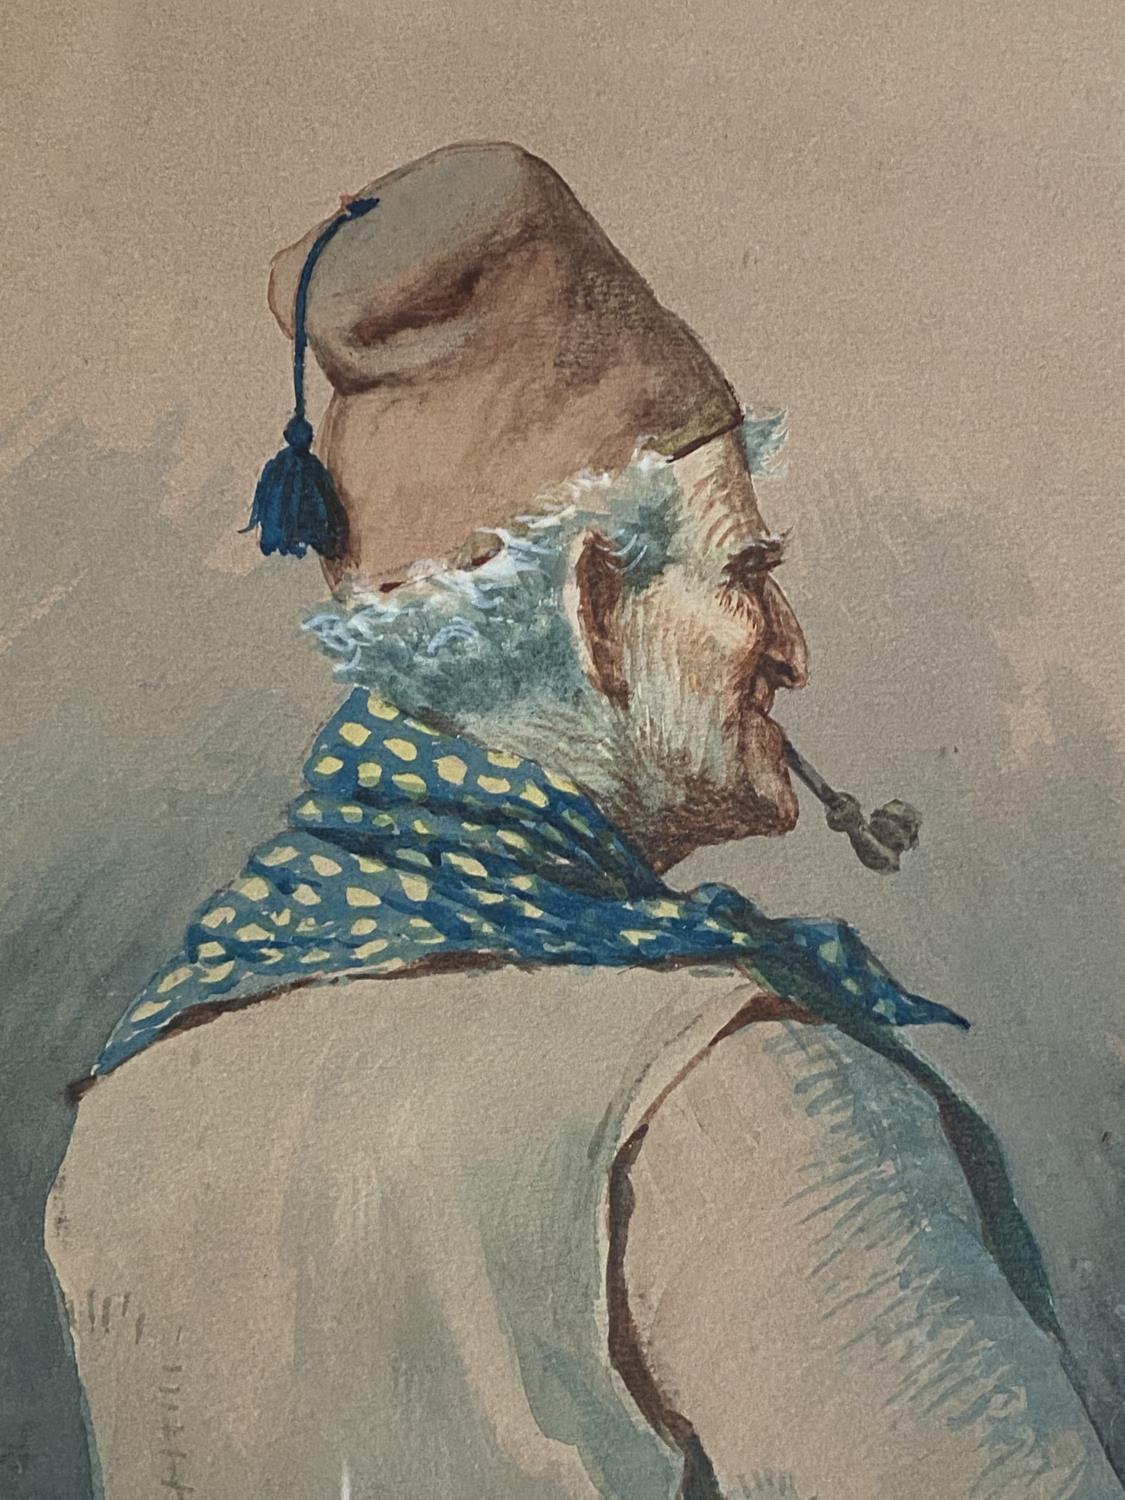 Nap Girotto: Peasant man in fez, smoking a pipe, watercolour, signed, 34 x 24 cm, framed and glazed - Image 2 of 3